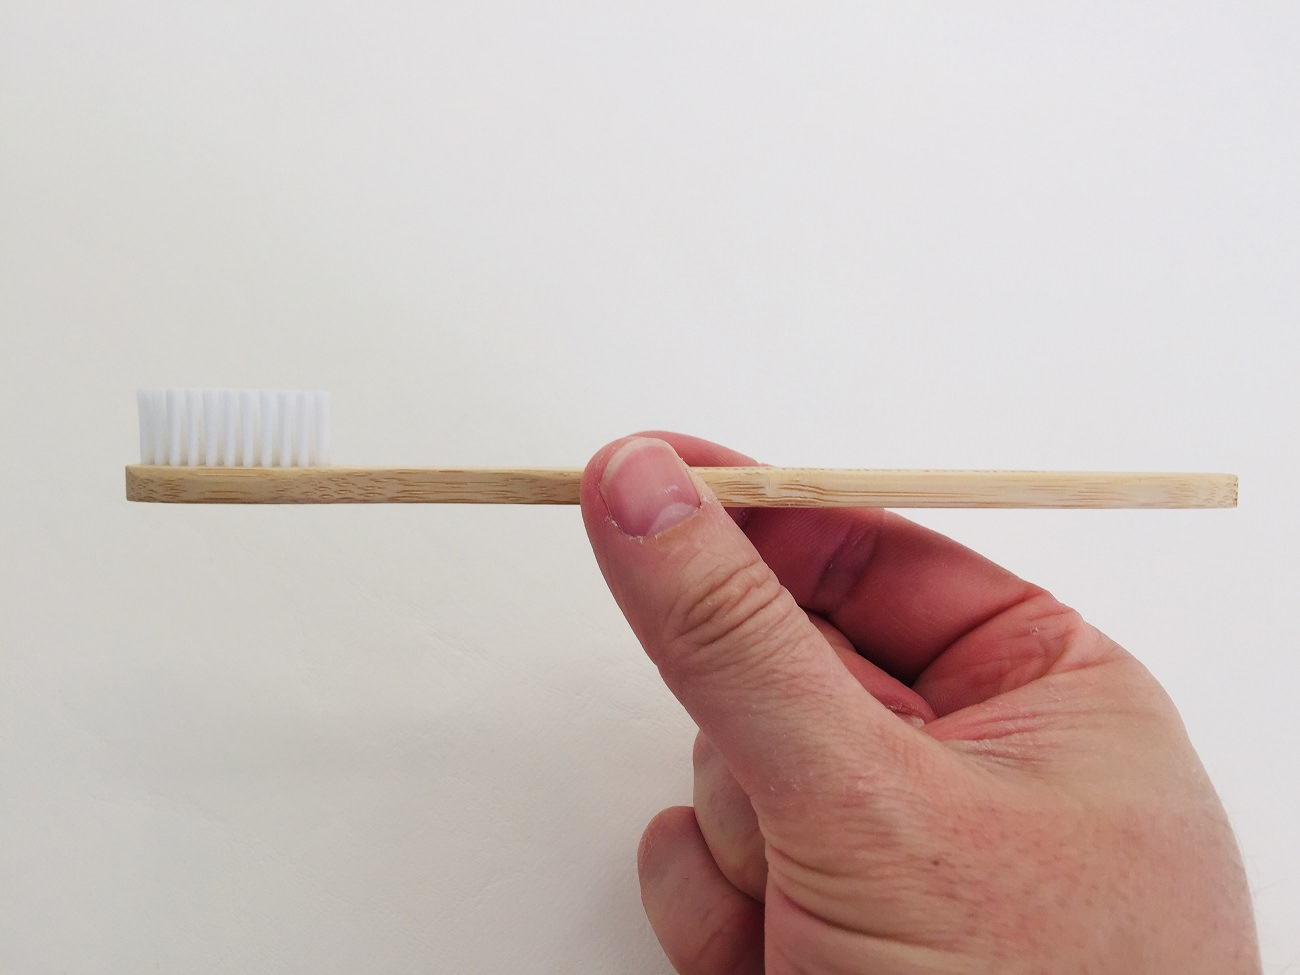 A side view of the Flora & Fauna Bamboo Toothbrush